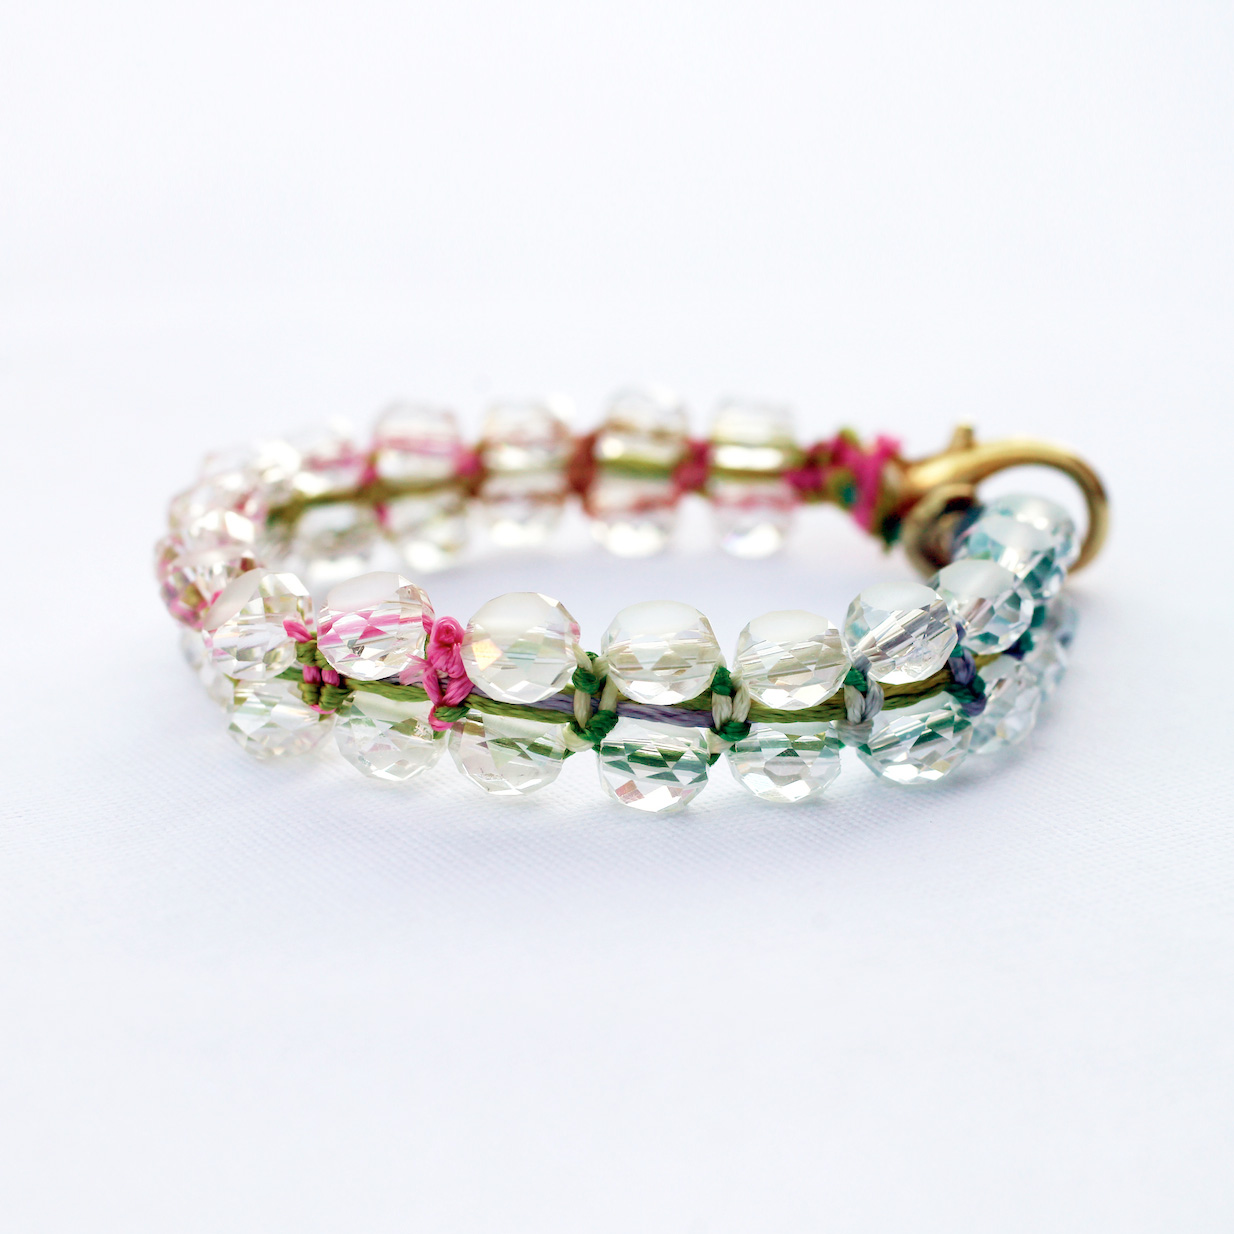 Anthro-Inspired Colorful Bracelet